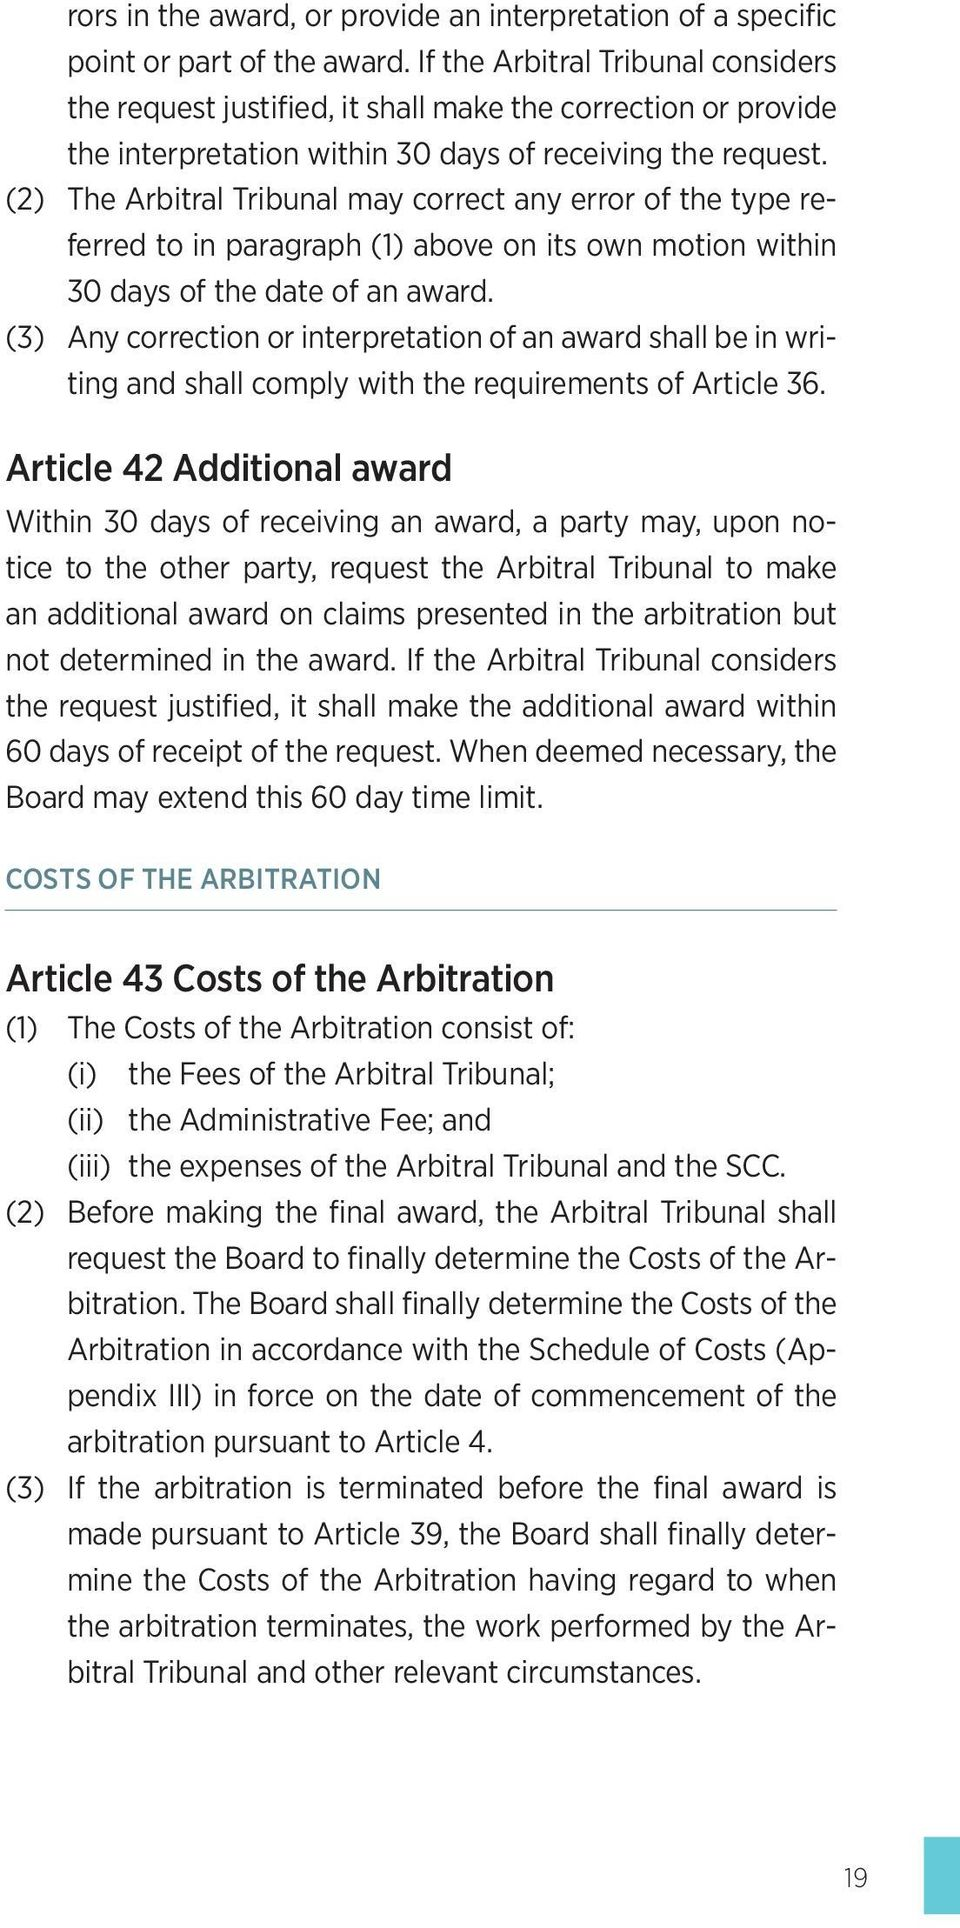 (2) The Arbitral Tribunal may correct any error of the type referred to in paragraph (1) above on its own motion within 30 days of the date of an award.